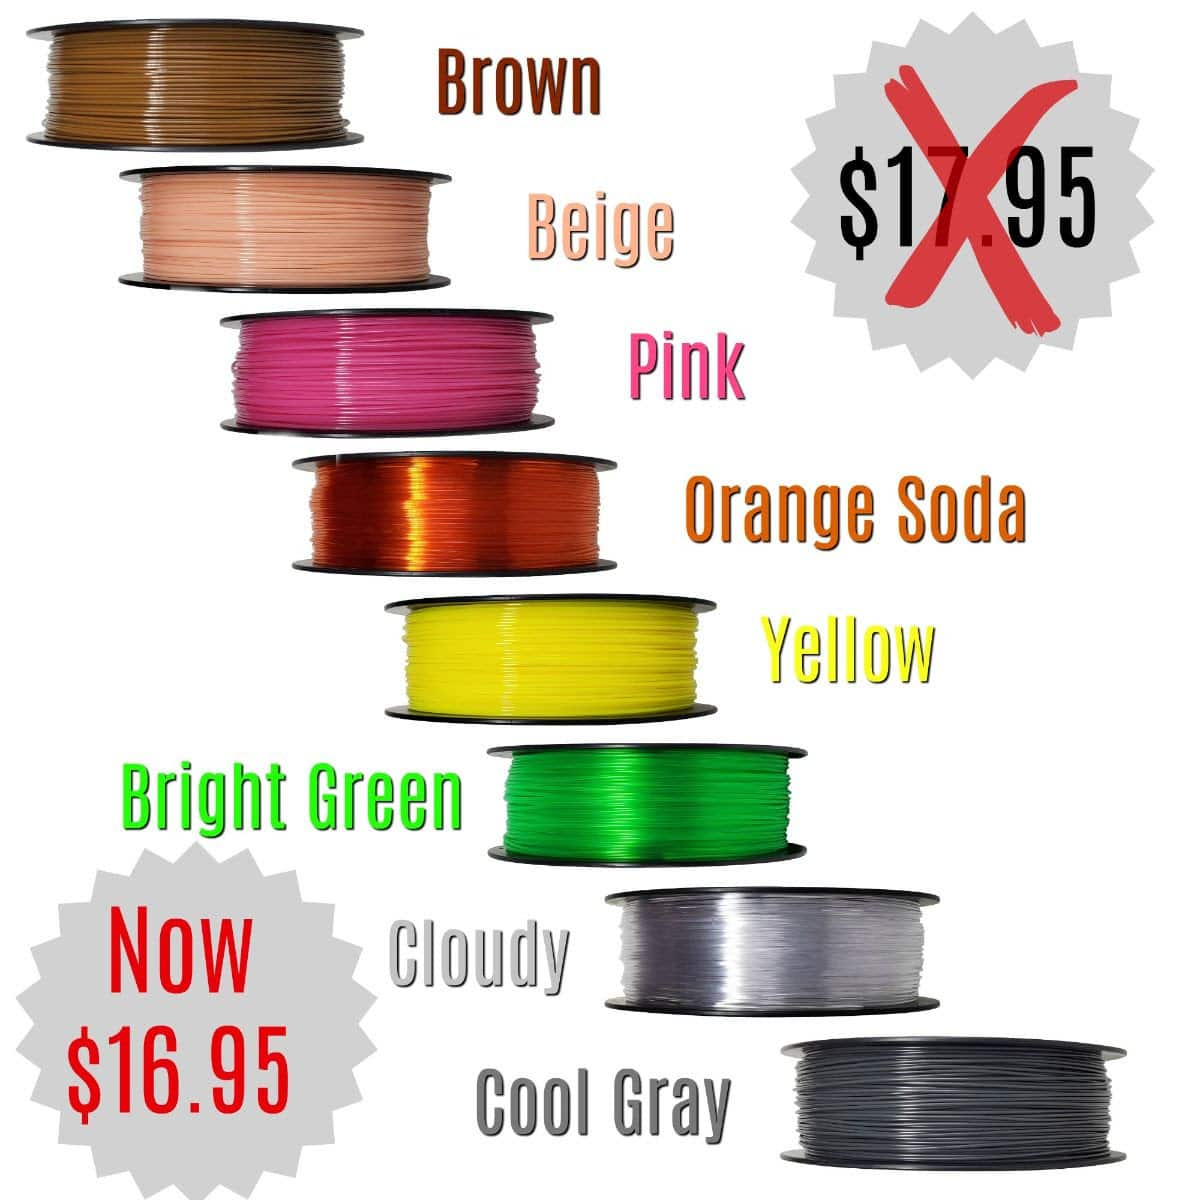 Zyltech PETG 1.75mm Filament sale free shipping $16.95